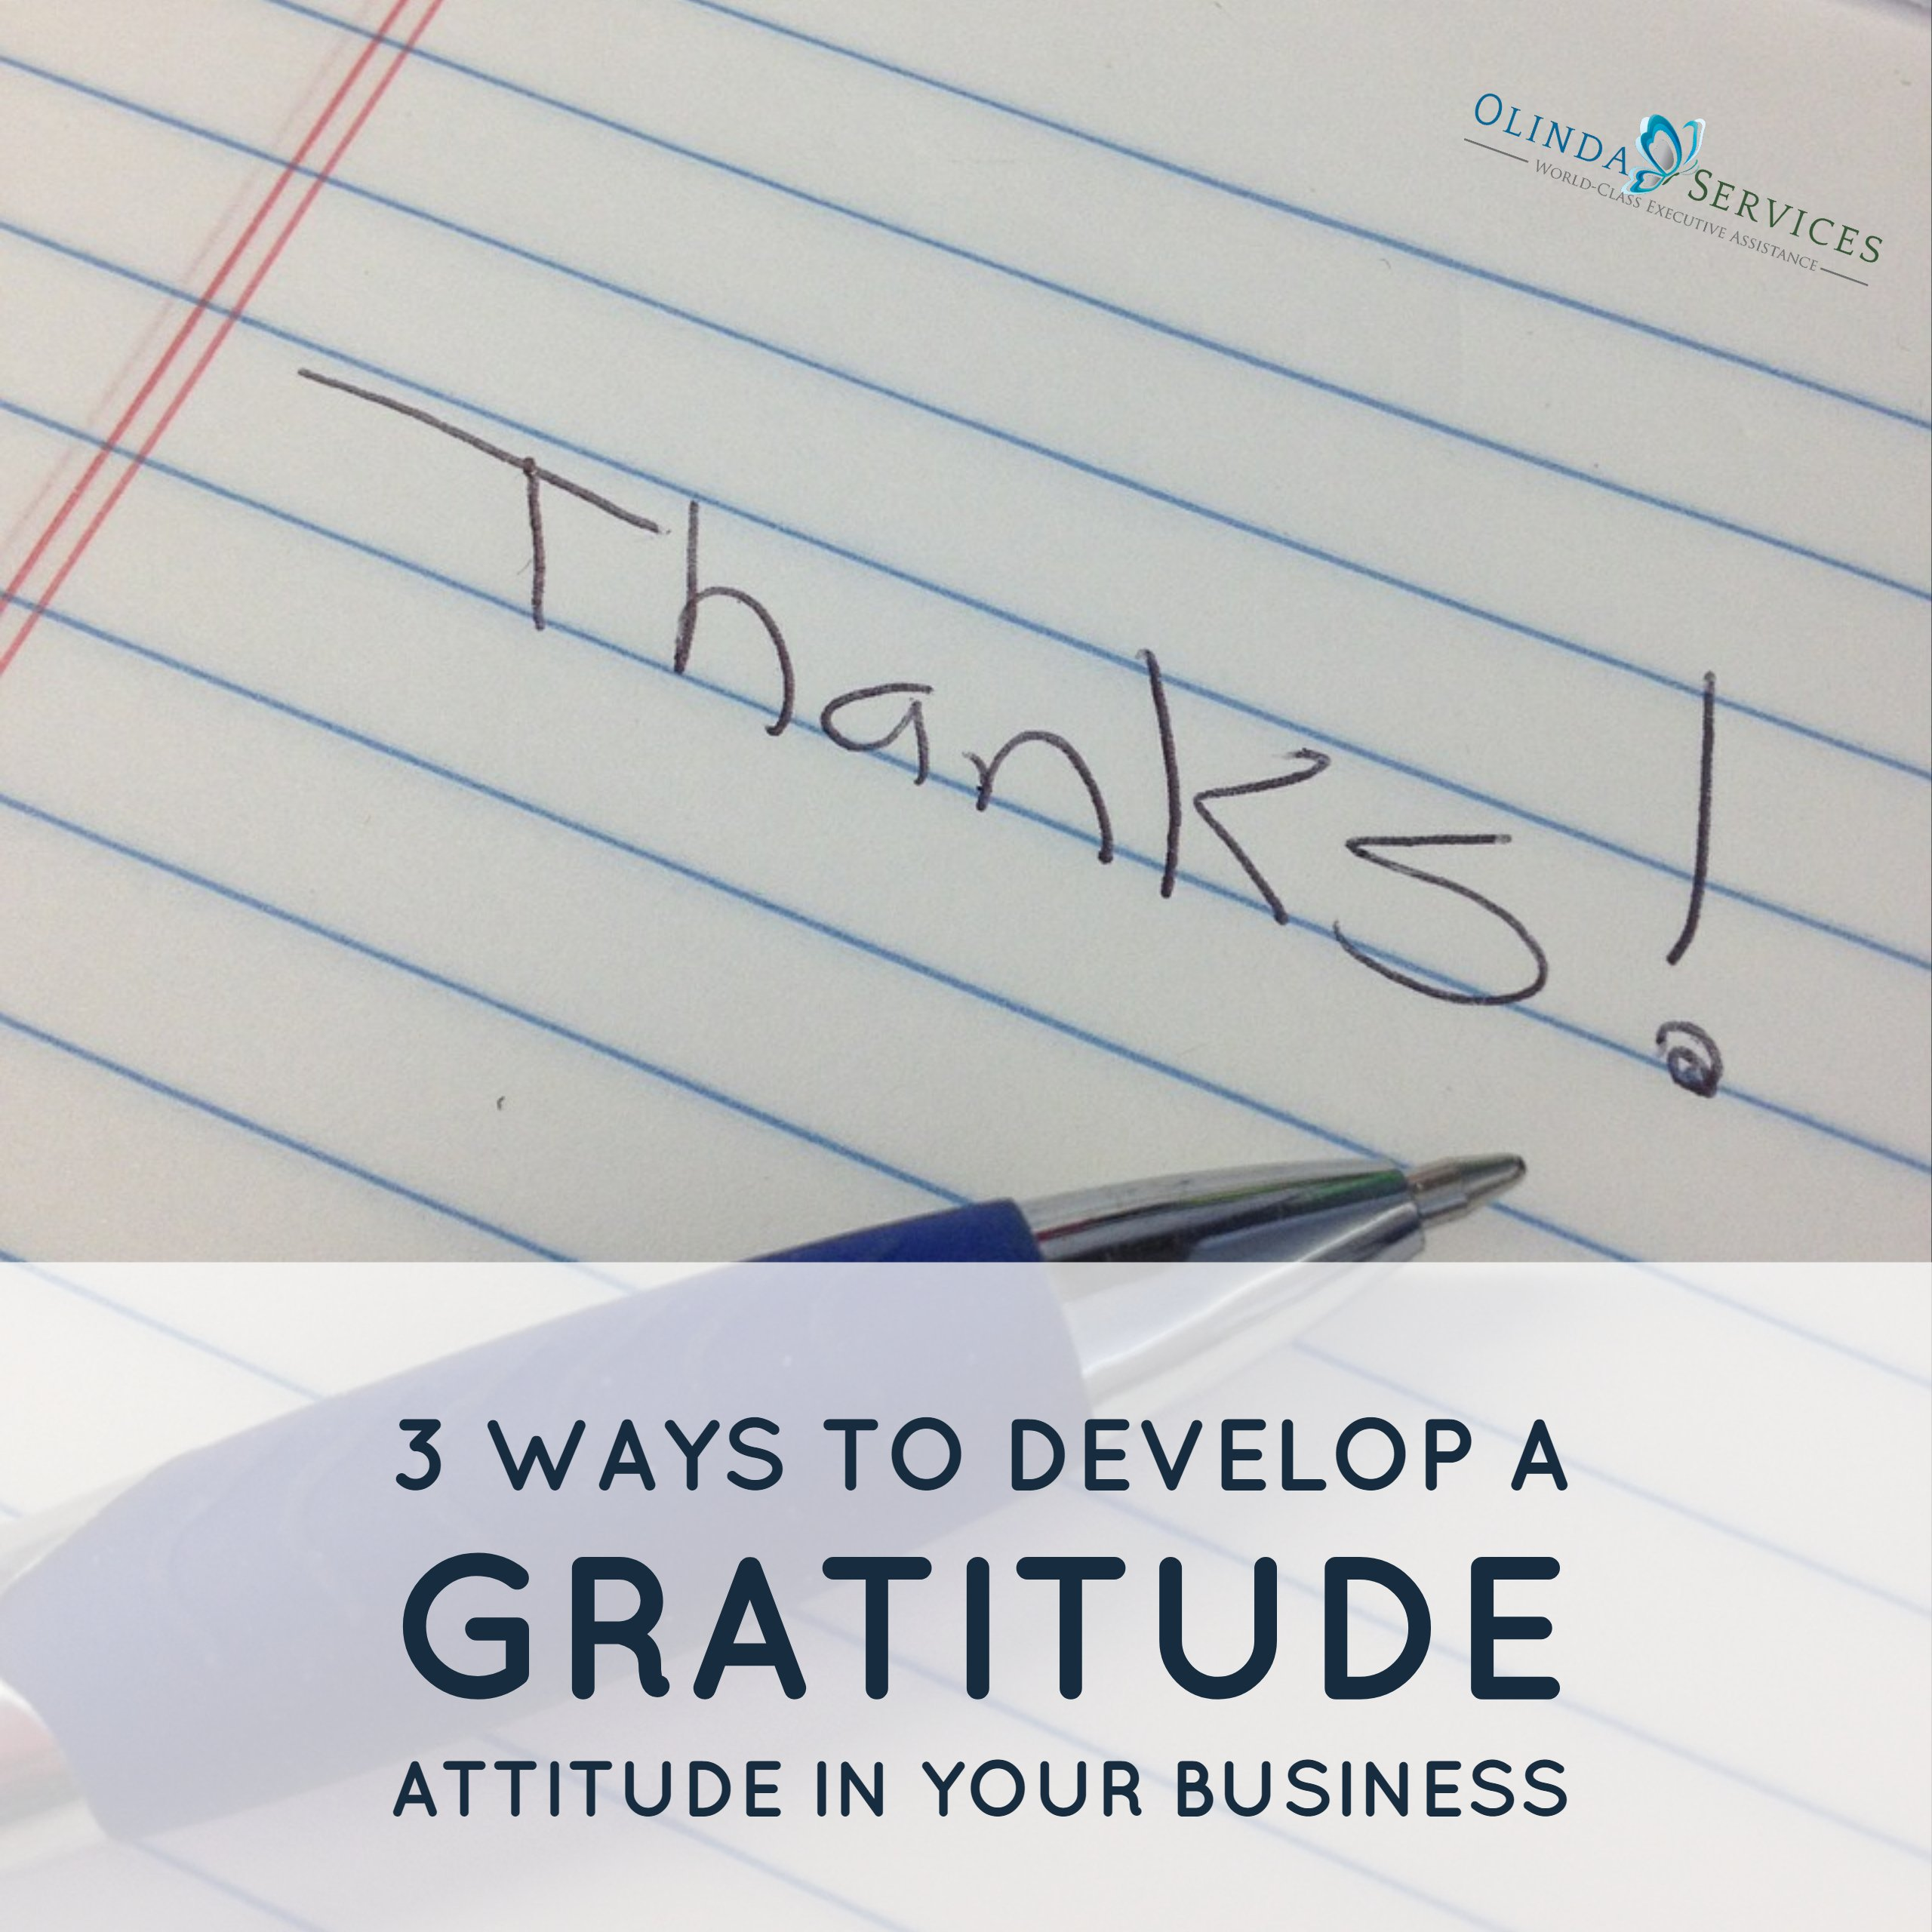 3 Ways to Develop a Gratitude Attitude in Your Business